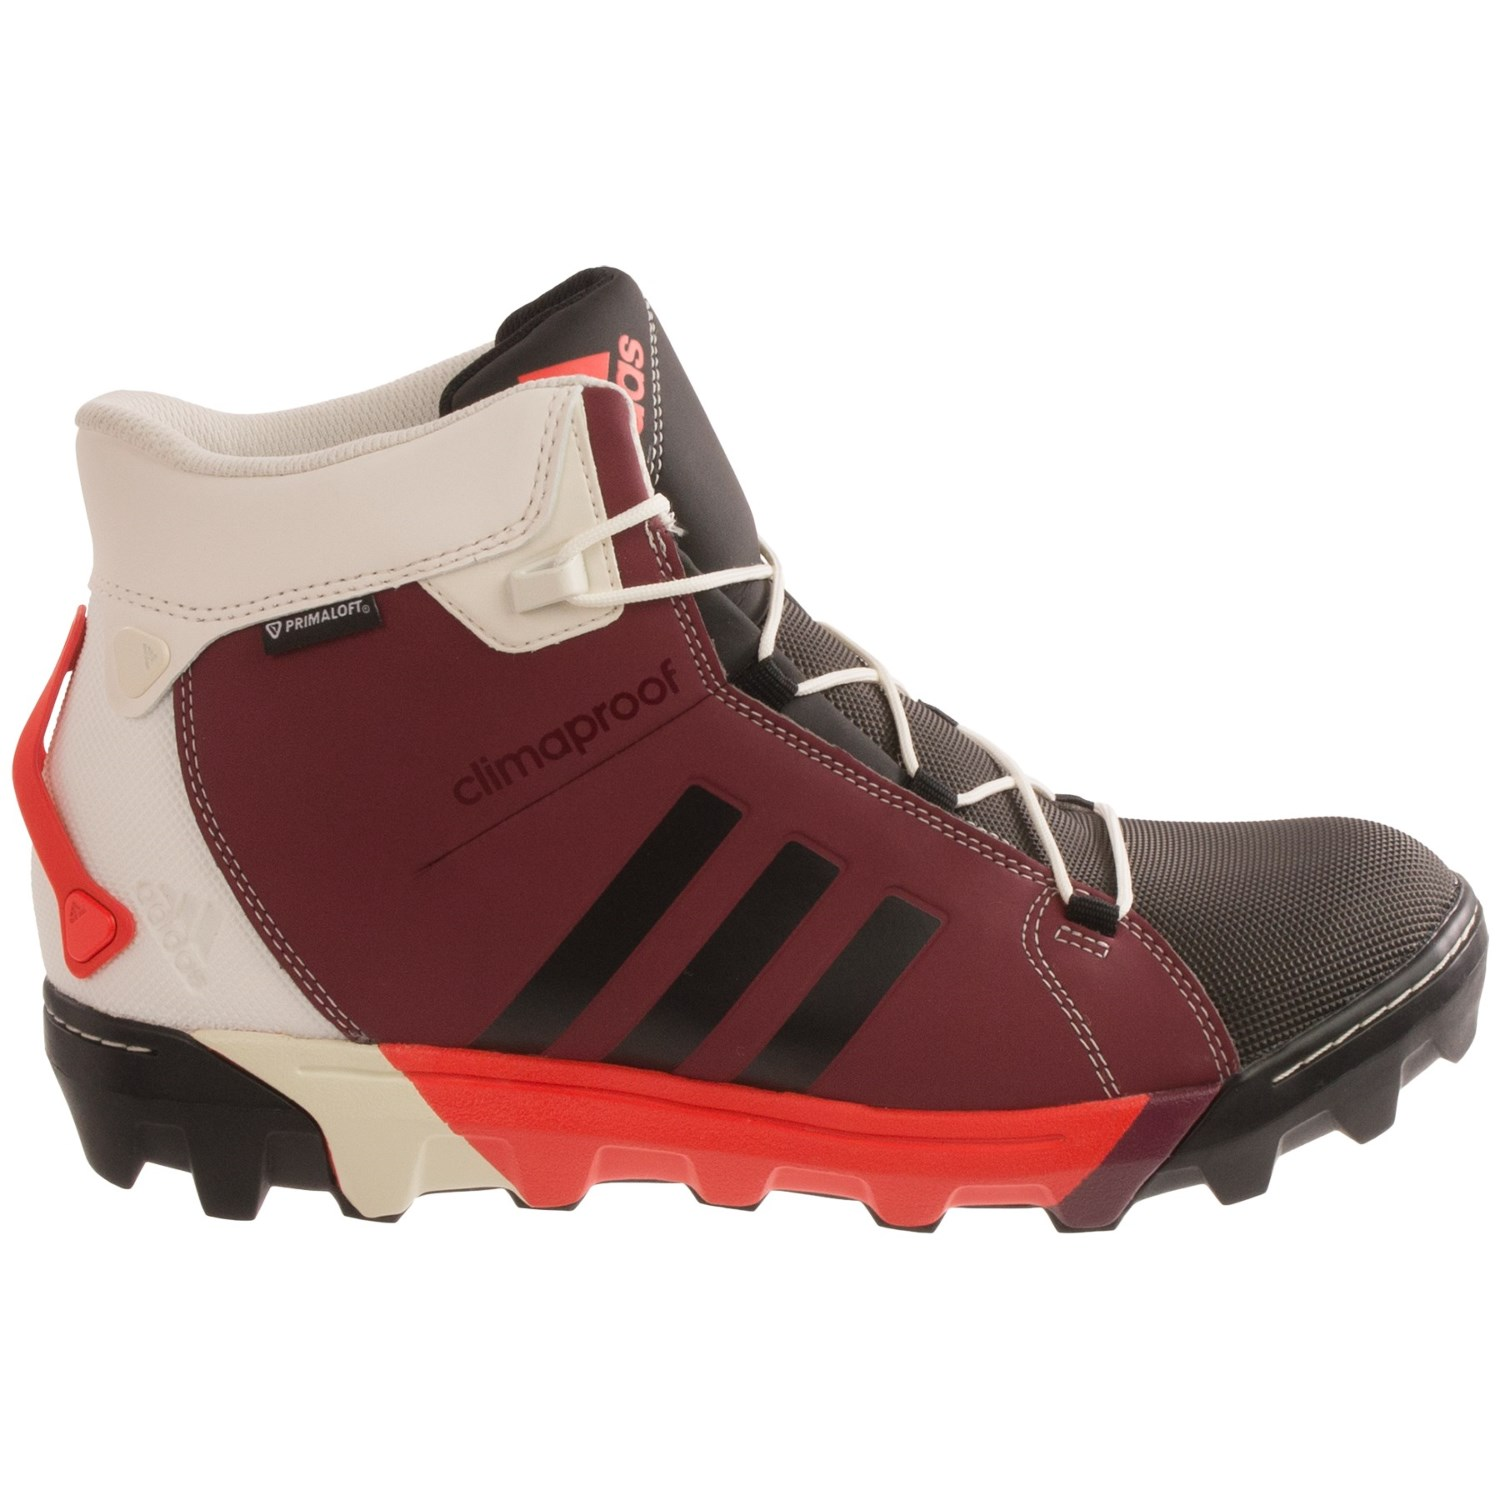 adidas outdoor Slopecruiser CP Primaloft® Winter Boots  Waterproof